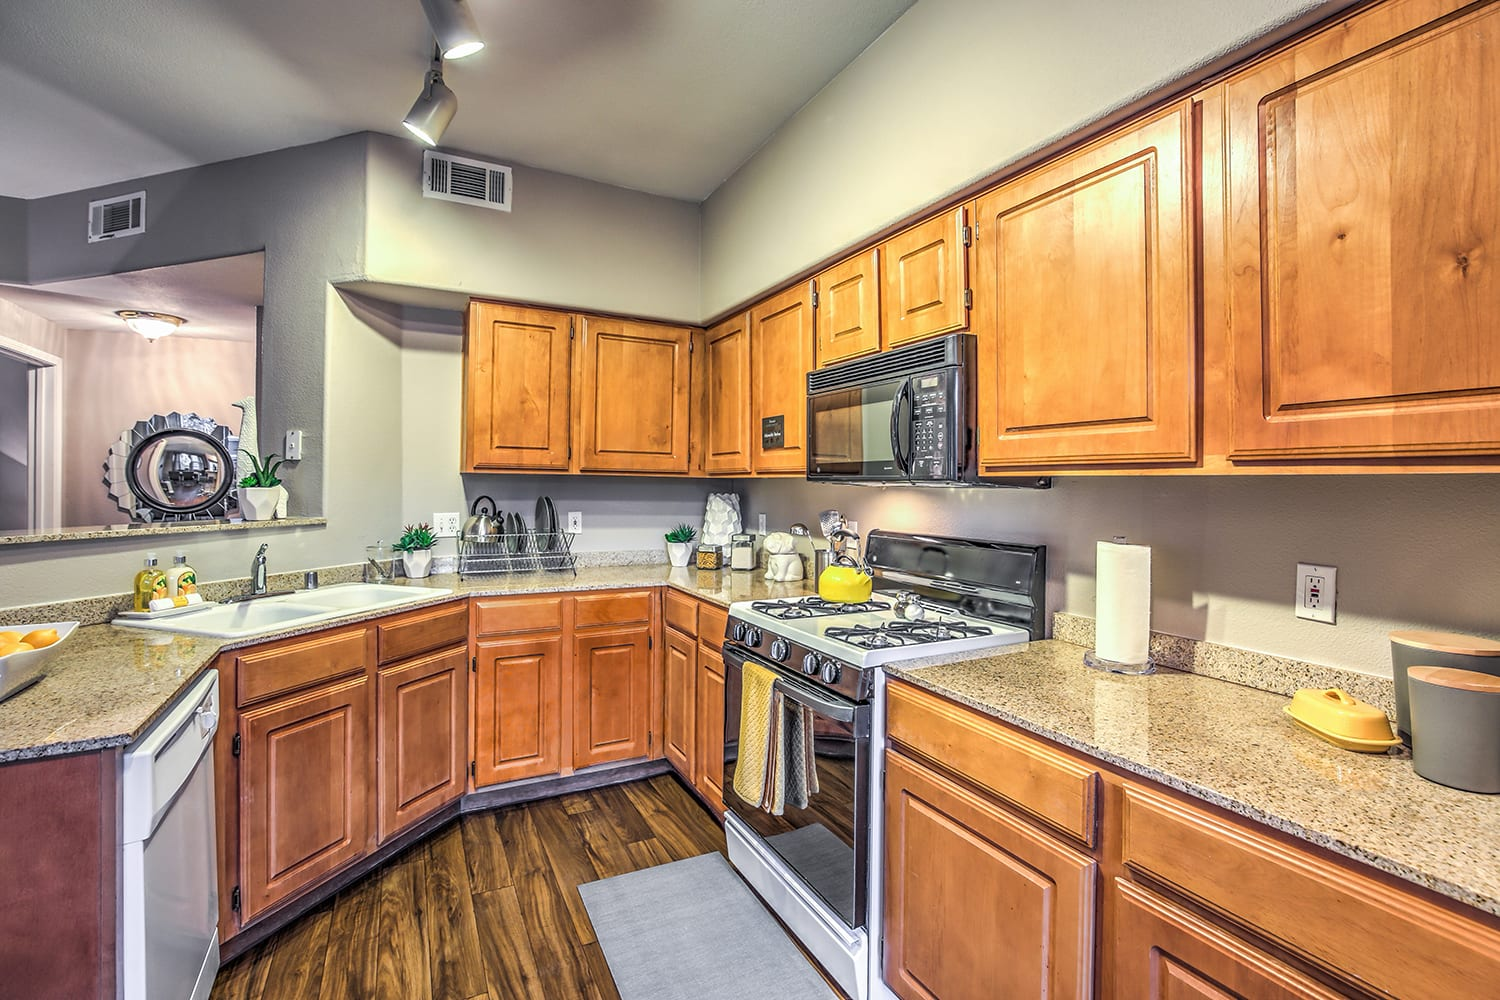 A warm kitchen with wooden cabinets, matching appliances, and smooth countertops.